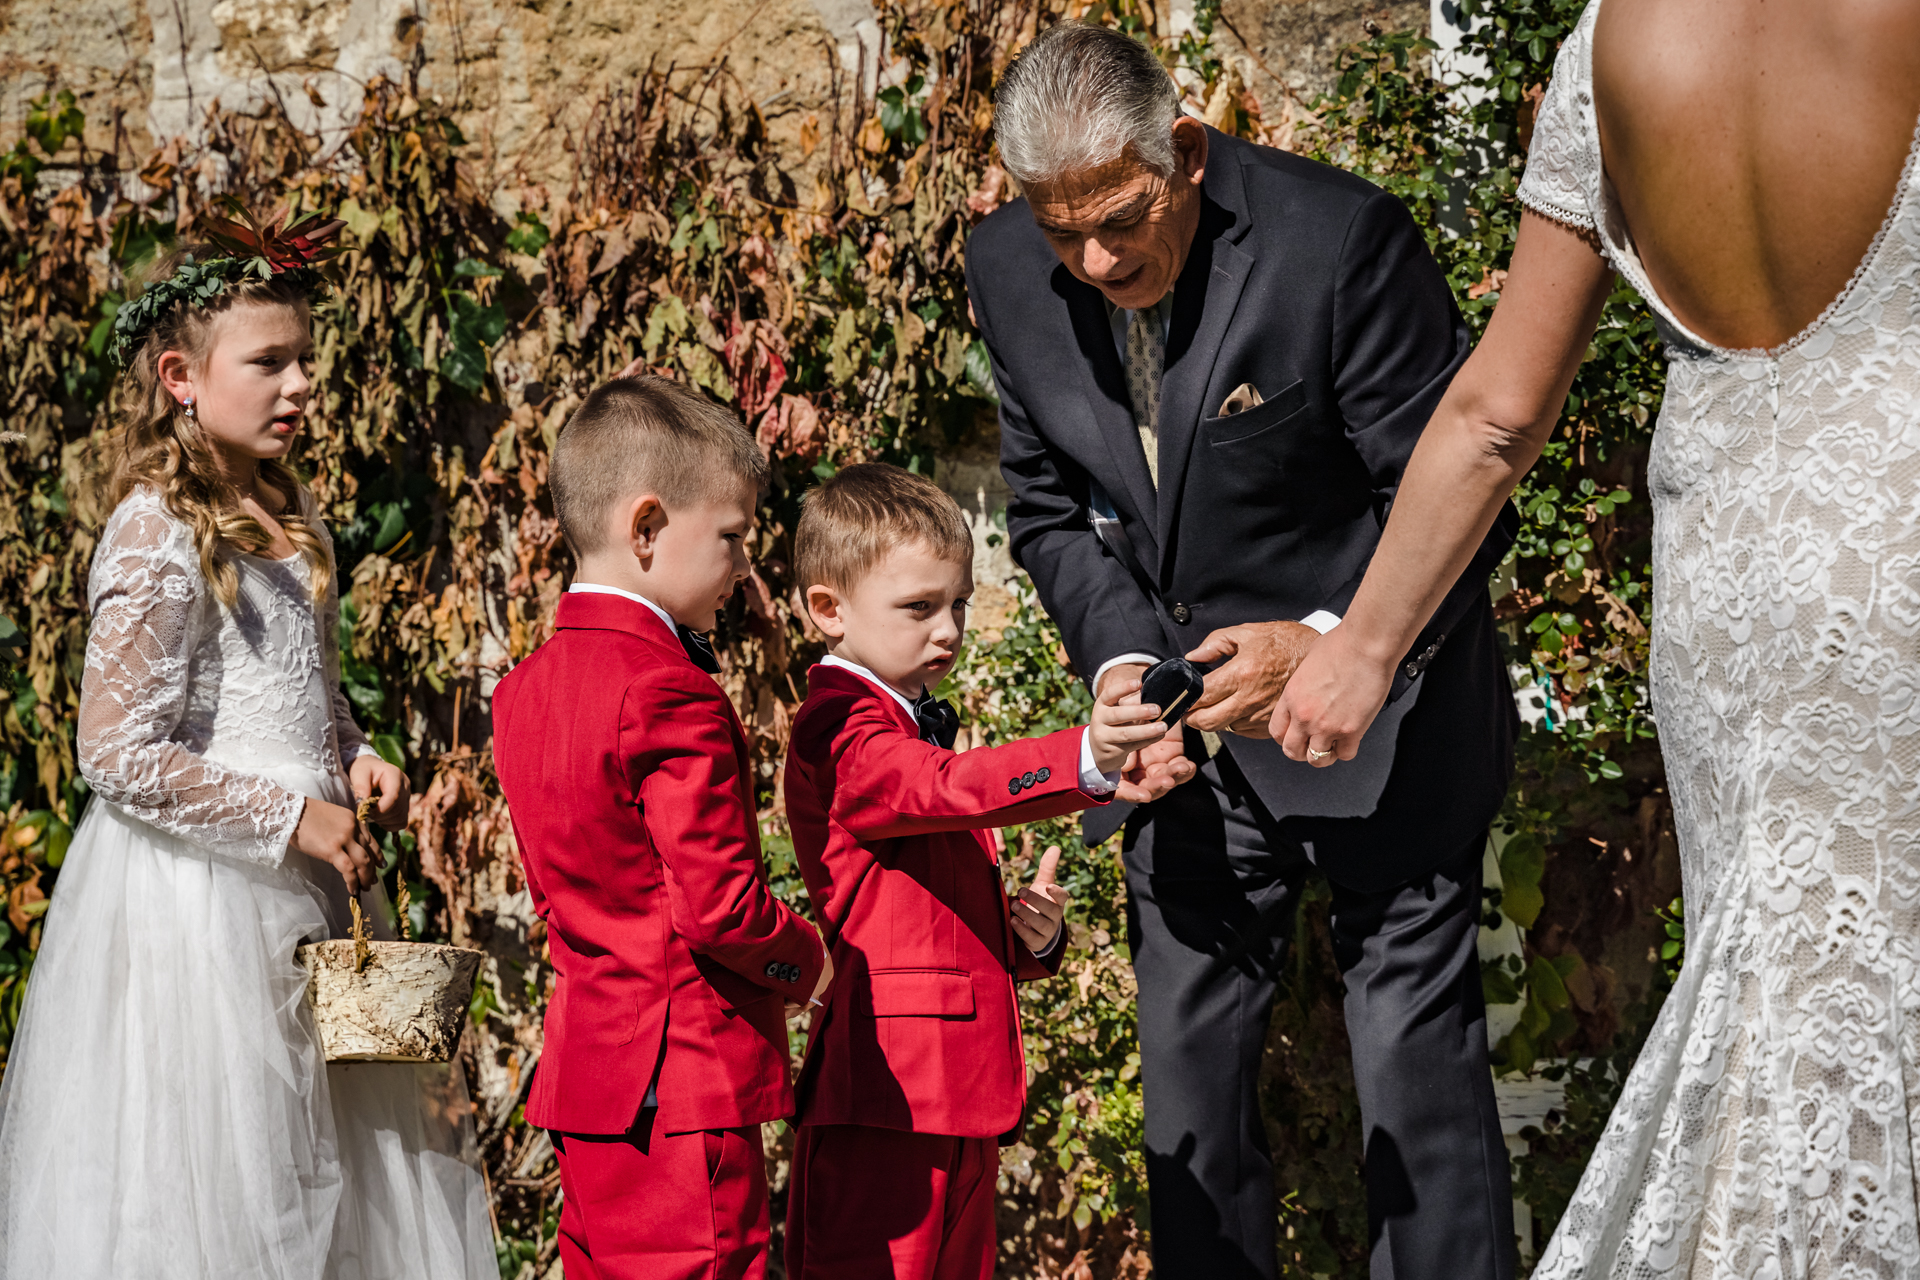 Wedding Photos - Dangberg Ranch Historic Park | A young nephew hands over the ring box